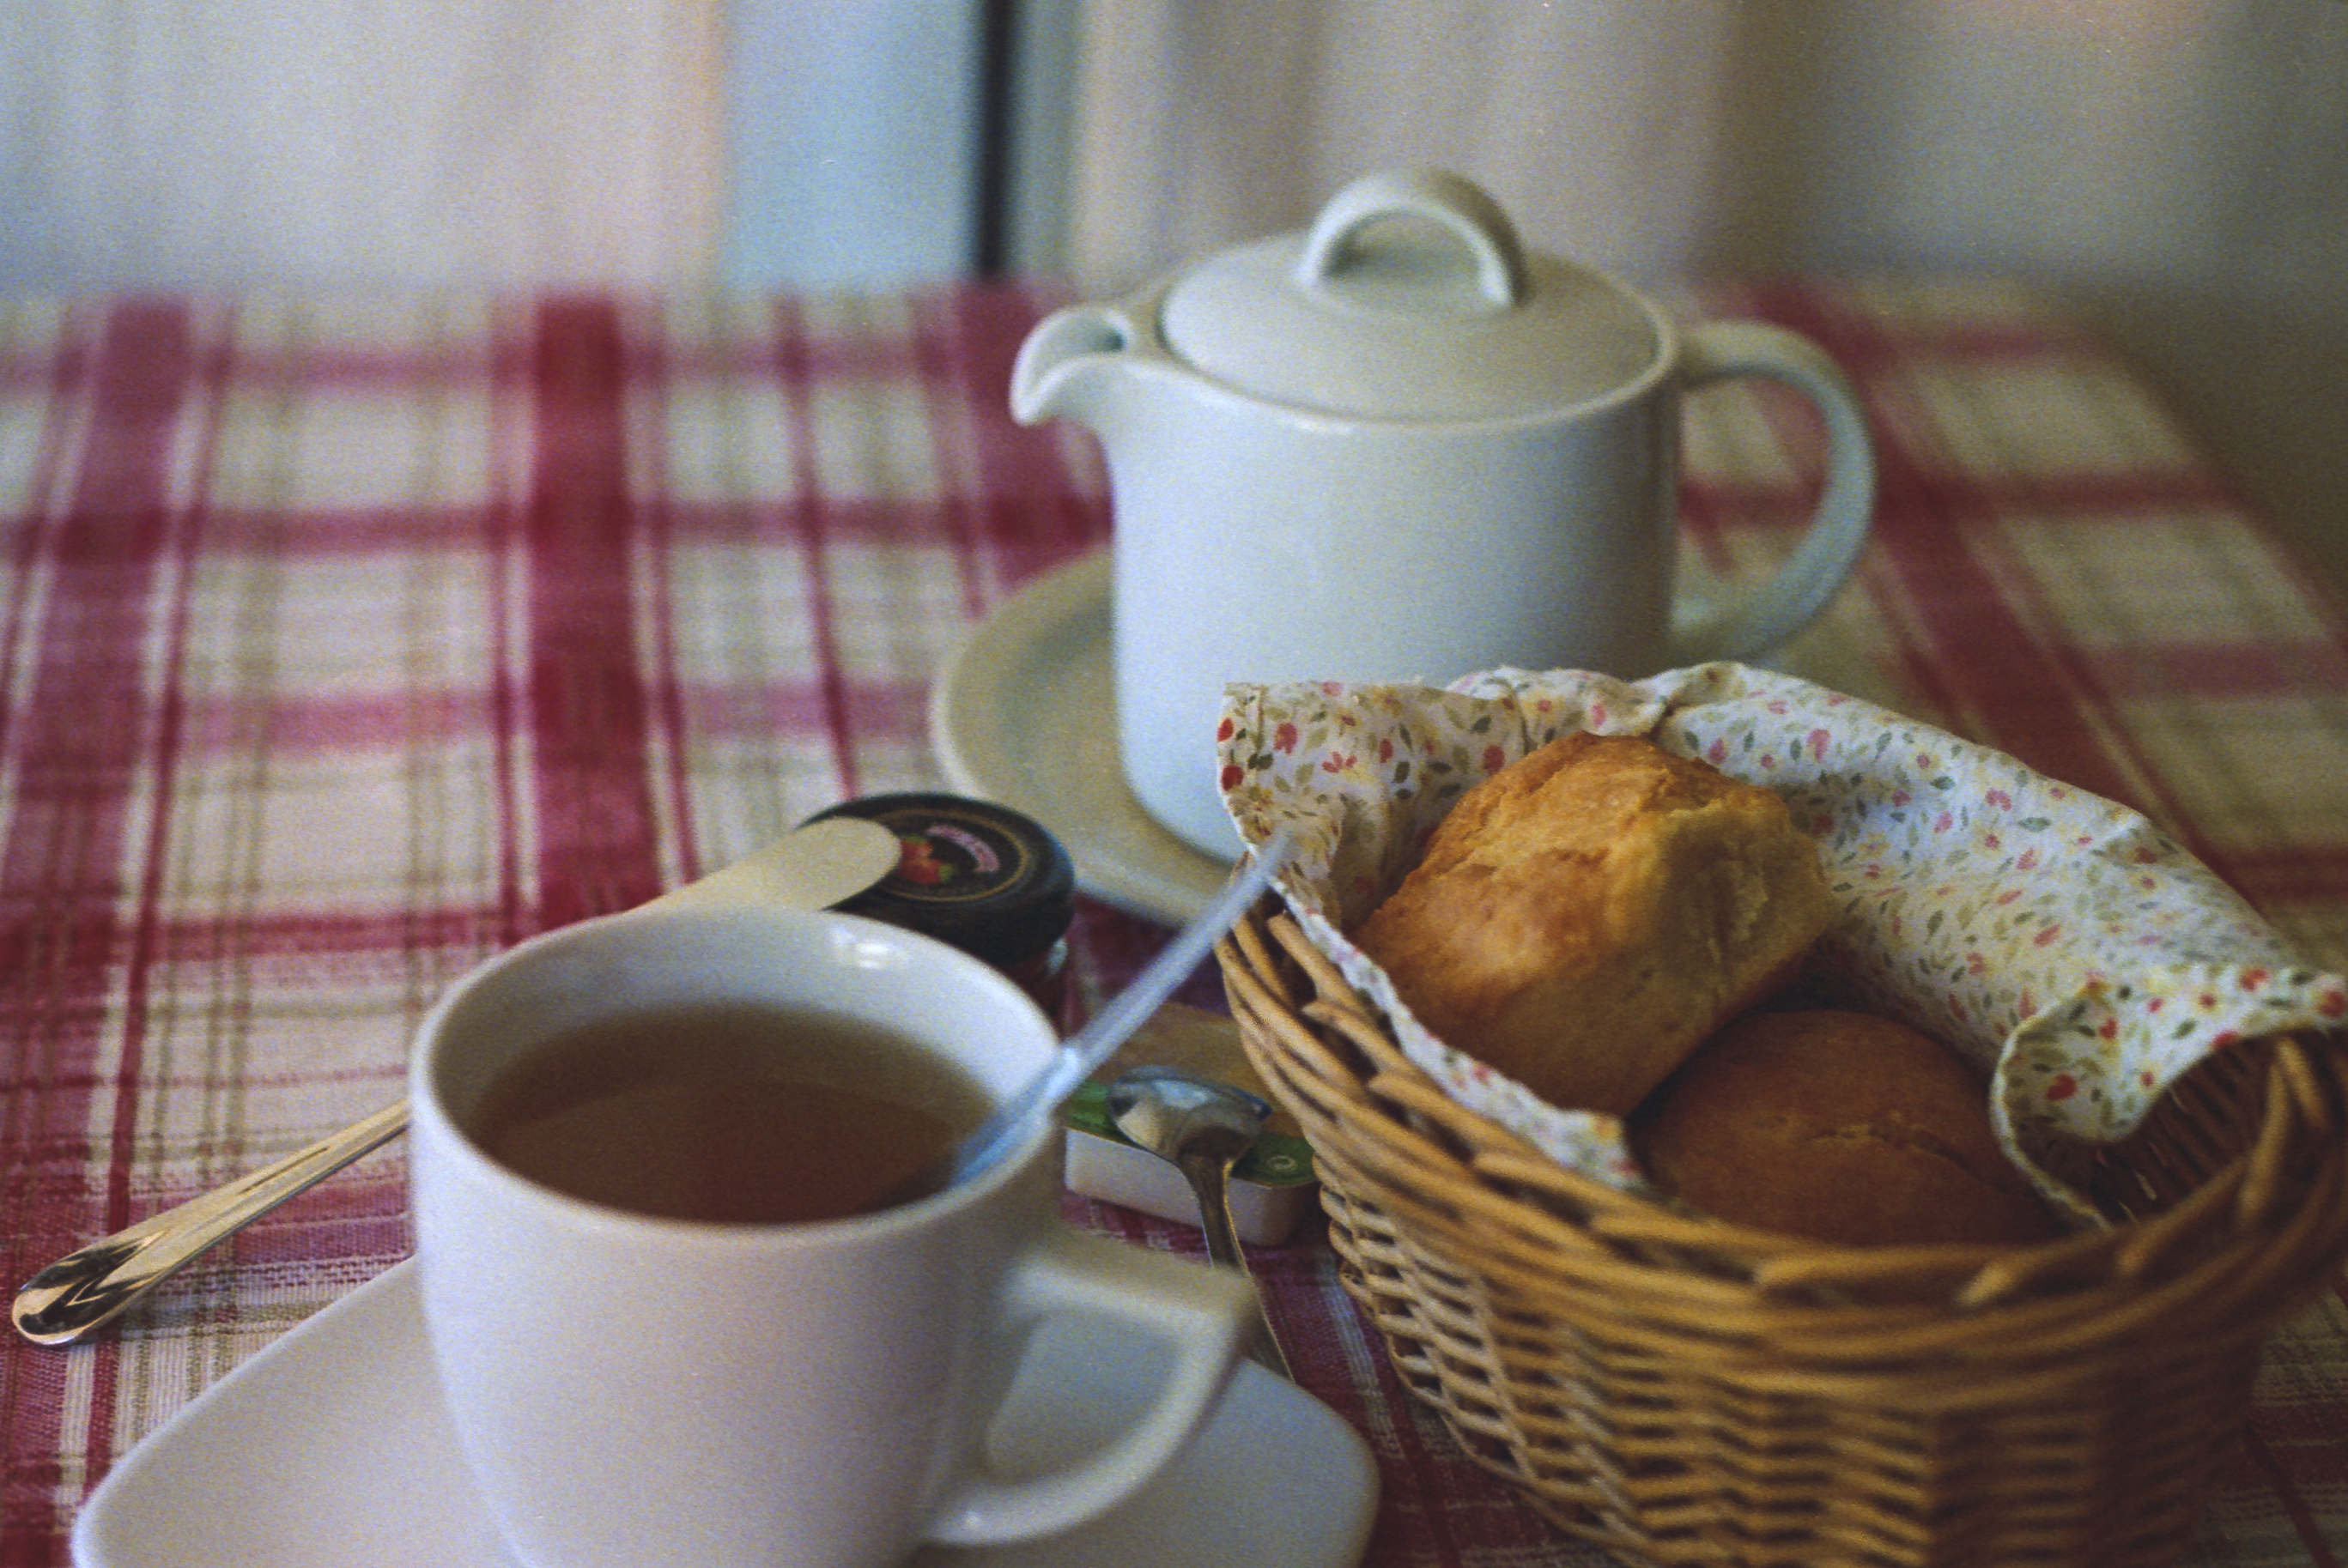 Teapot and cup of tea next to muffins